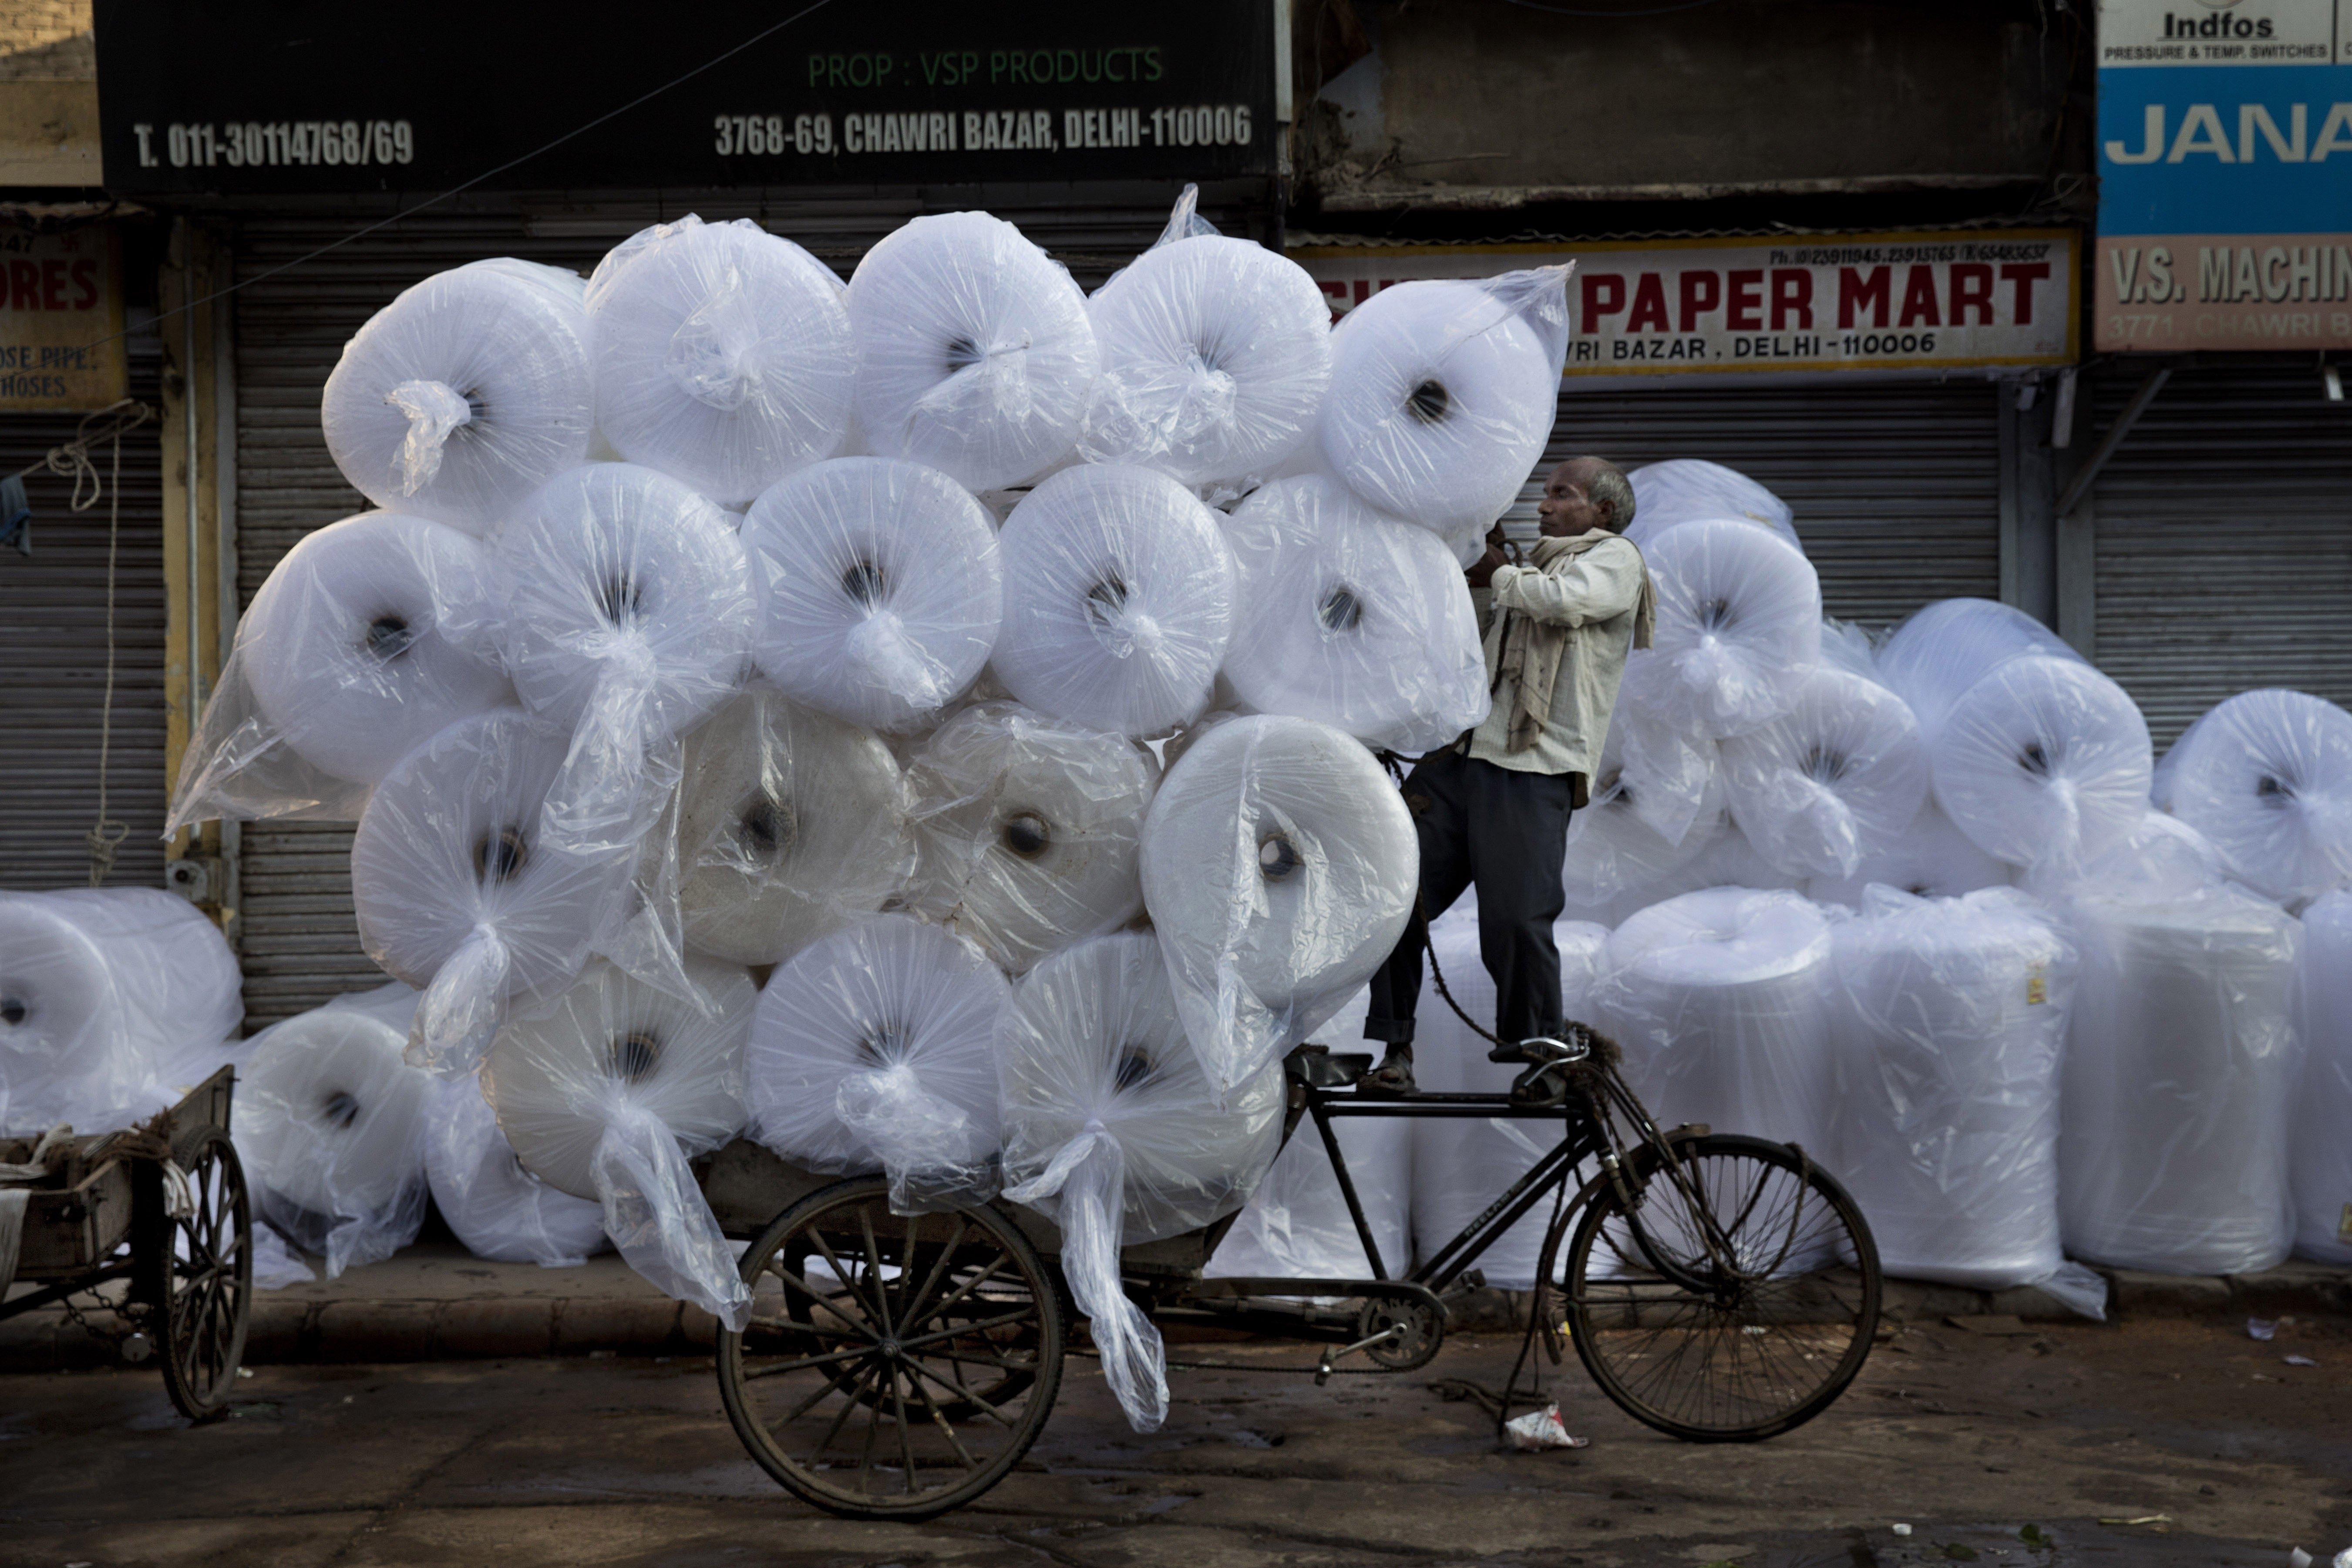 An Indian laborer loads goods on a bike at Chawri Bazar, in New Delhi on Sept. 1, 2014.